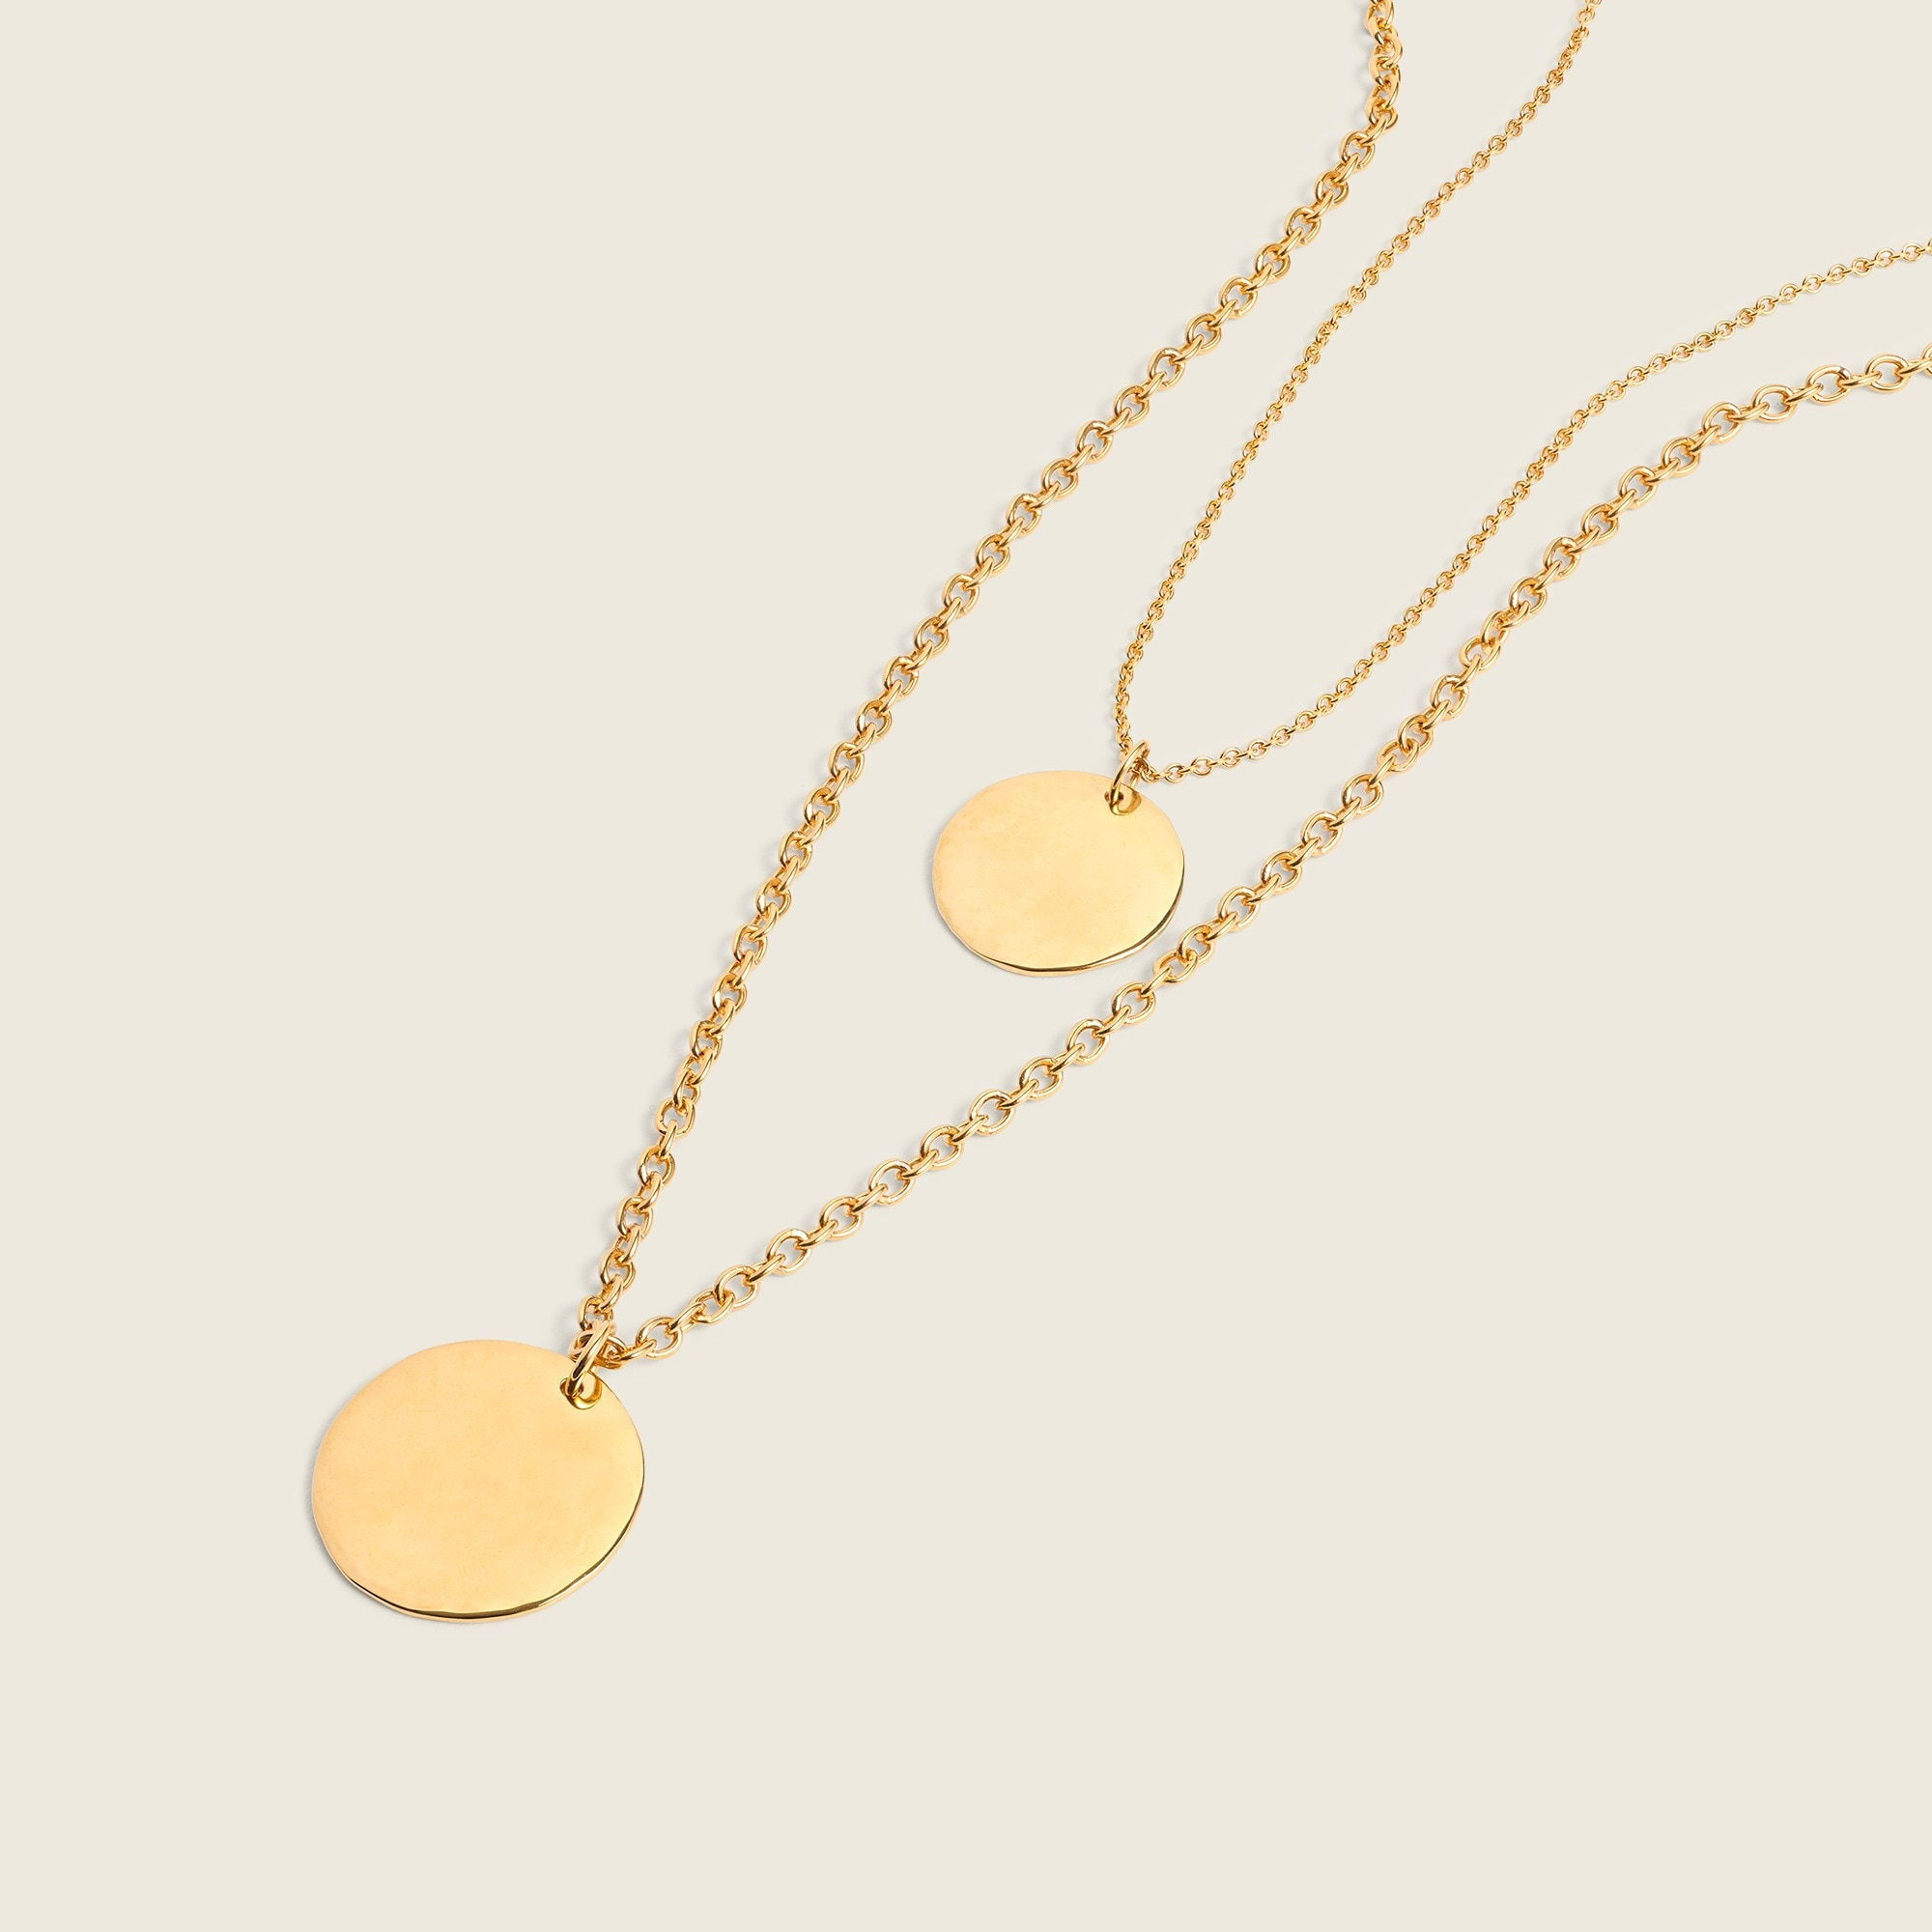 Image 2 for Layered coin necklace